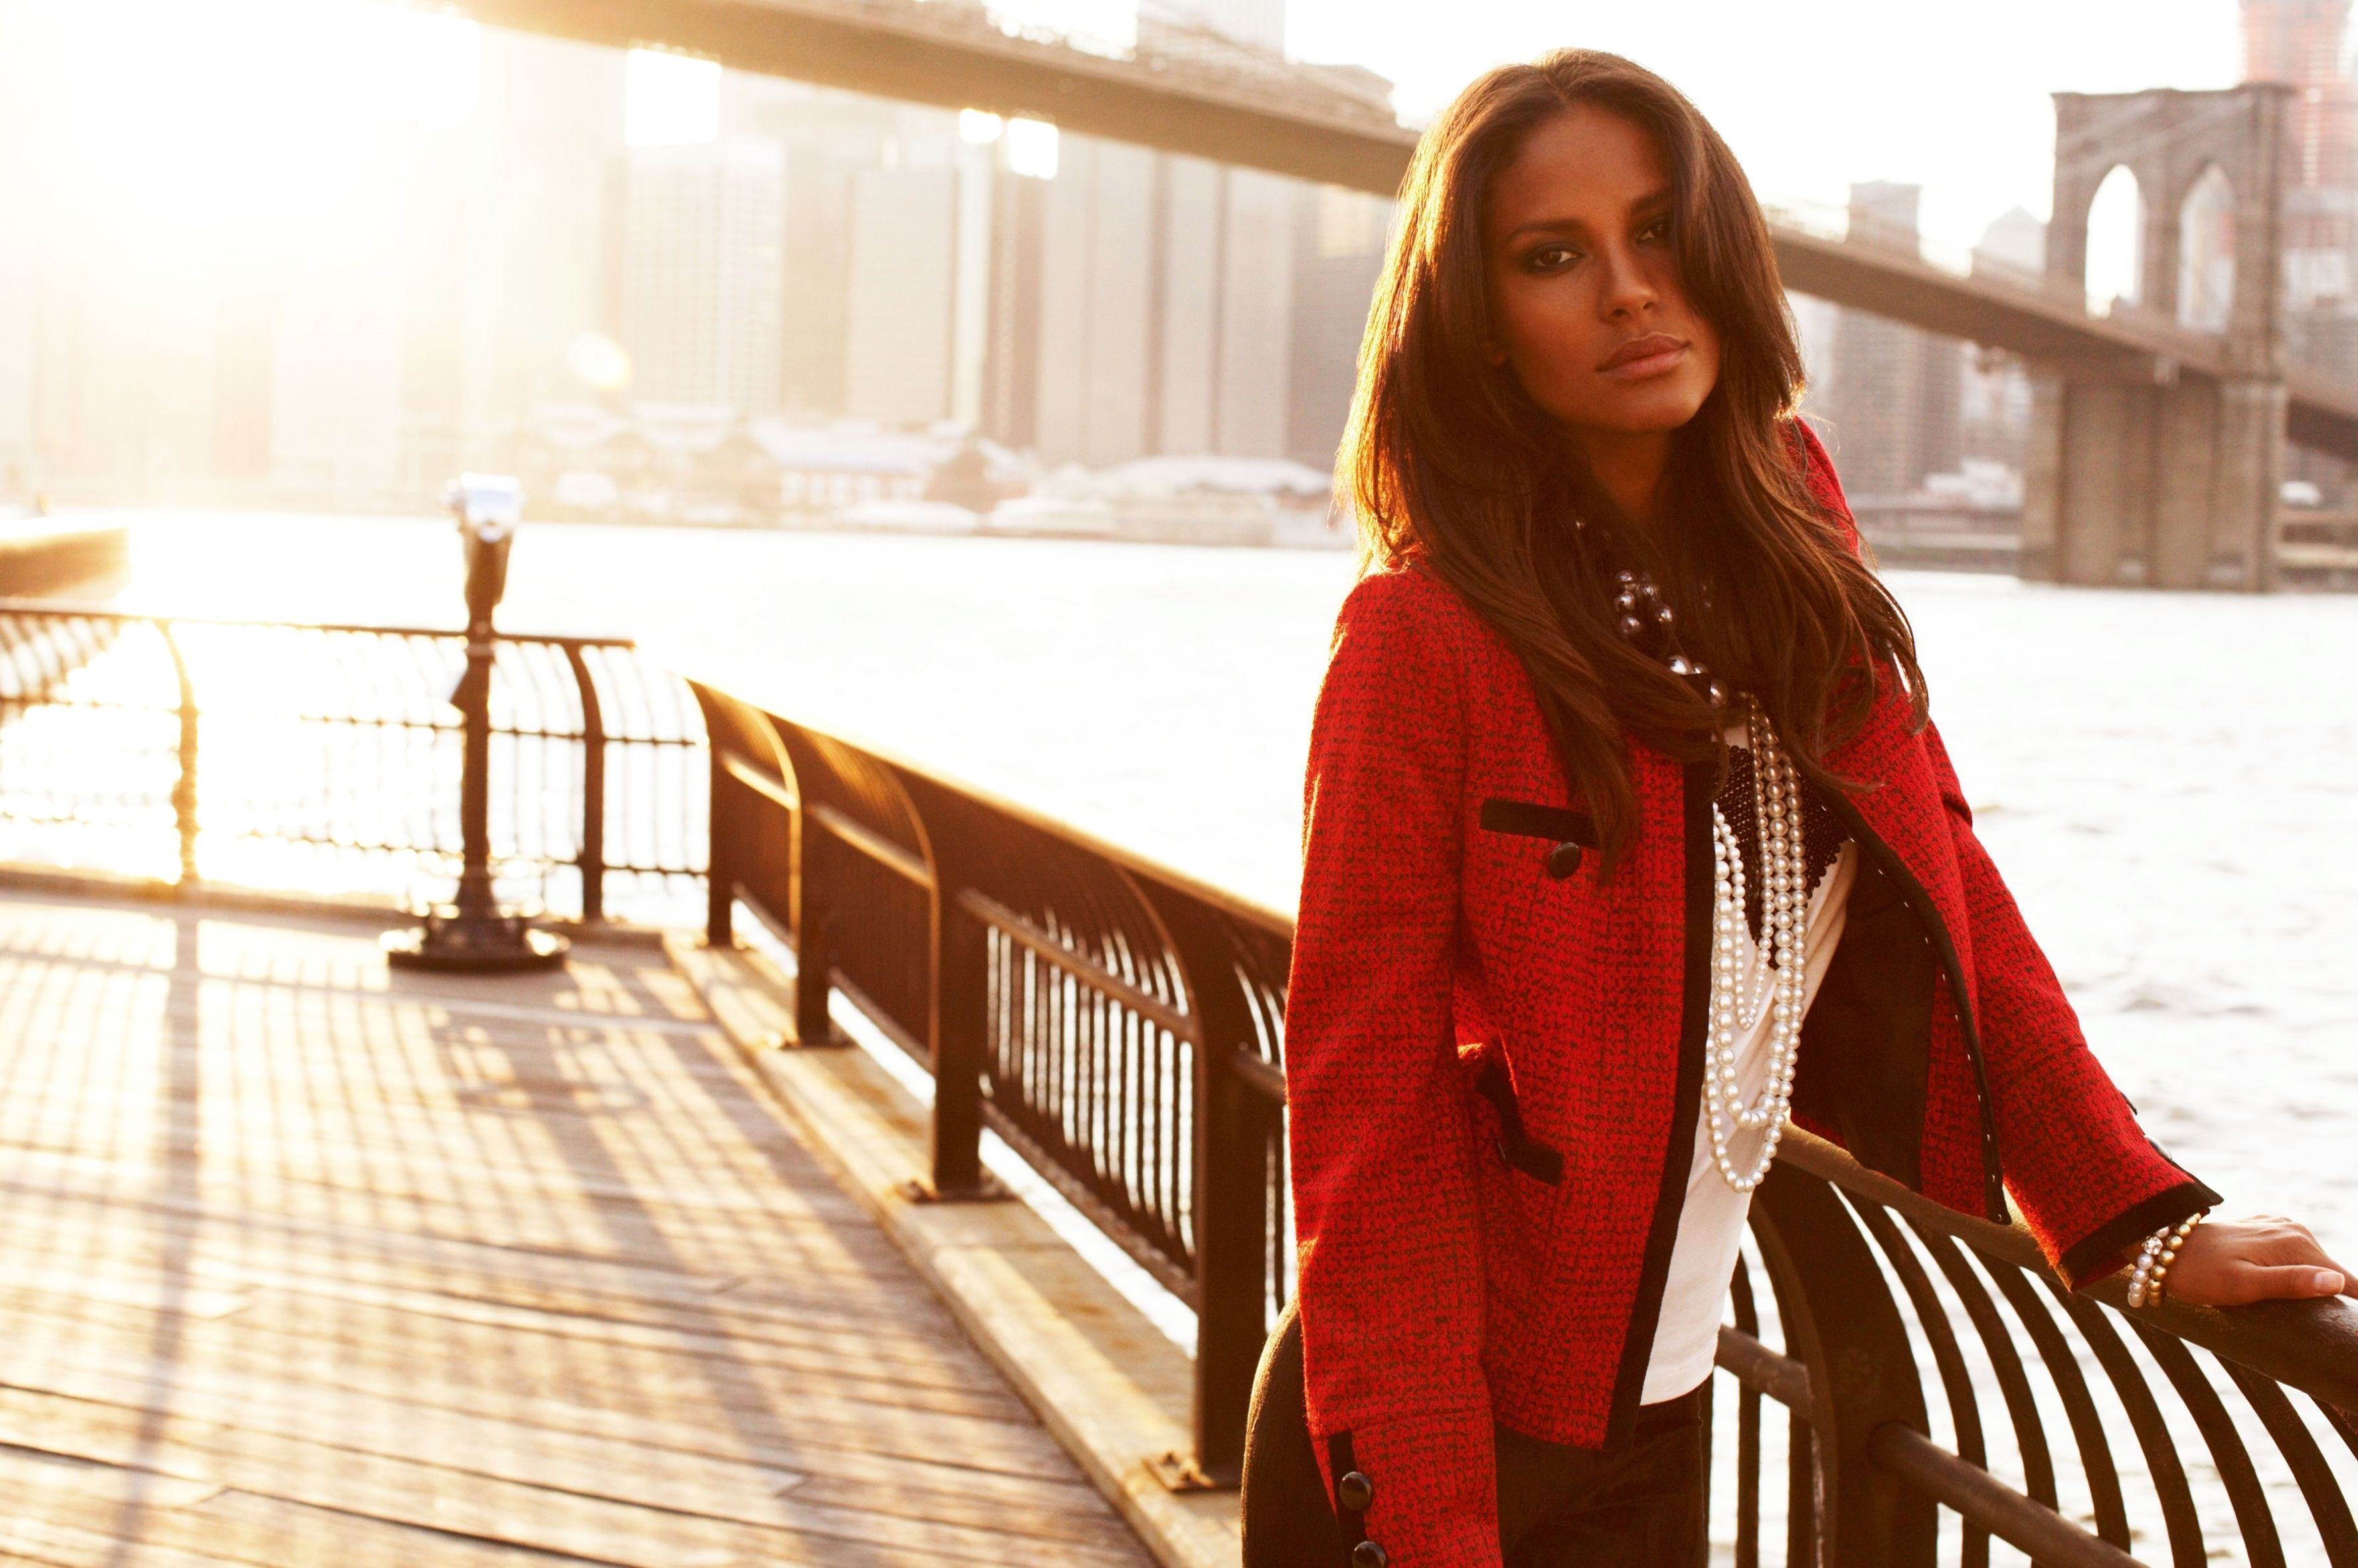 Girl jacket river hair emanuela de paula model sun bridge for New york models